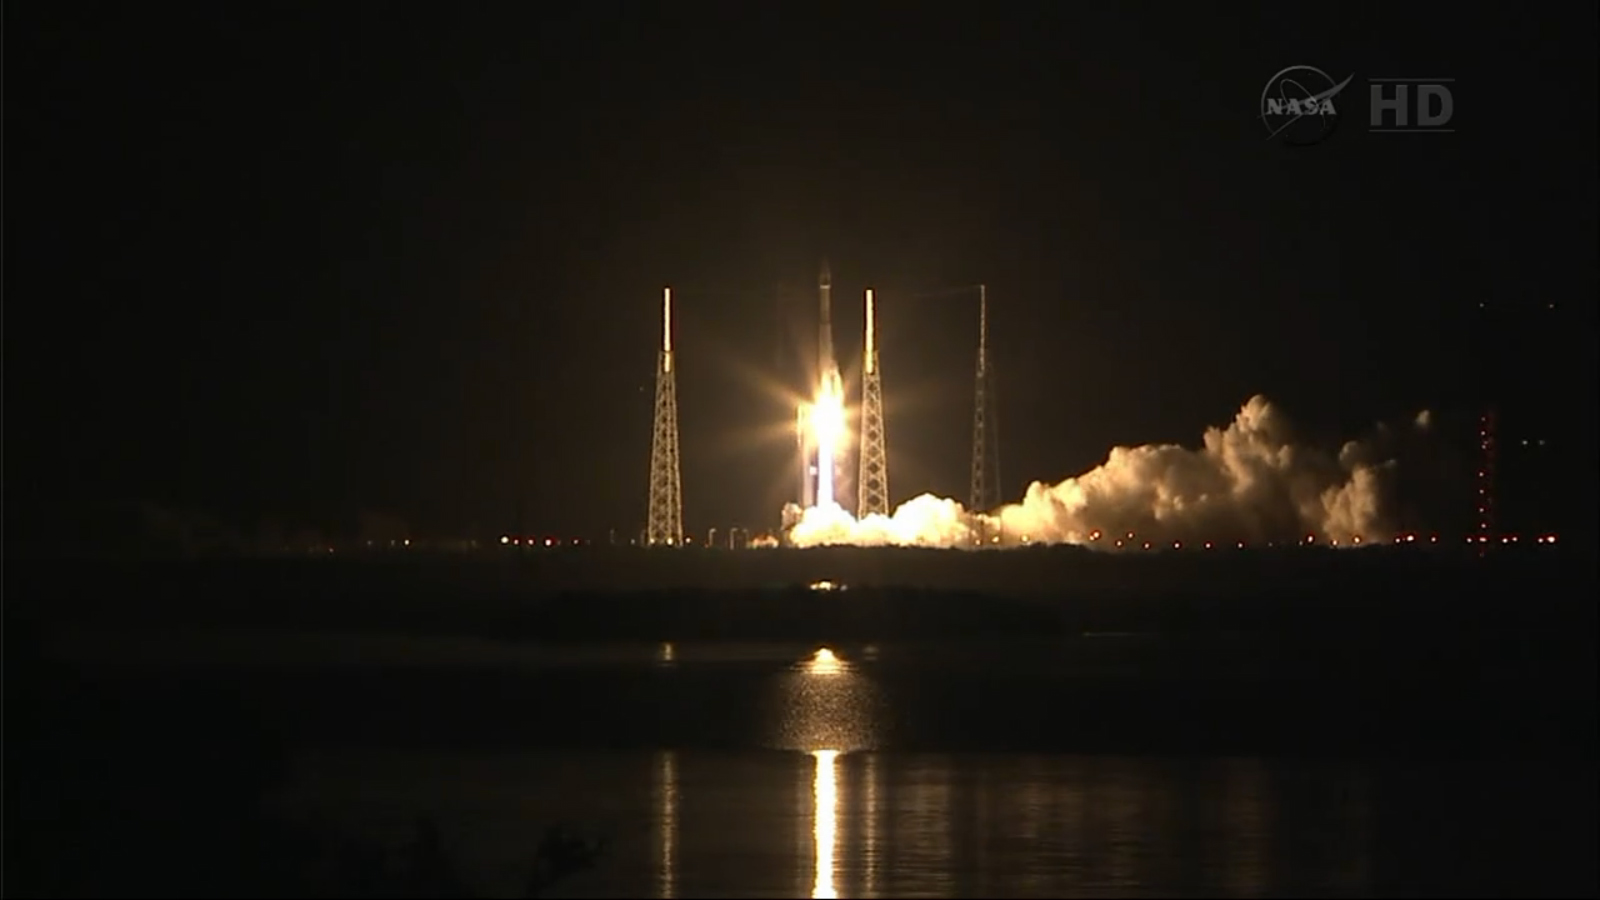 NASA Launches Next-Generation Relay Satellite Into Orbit